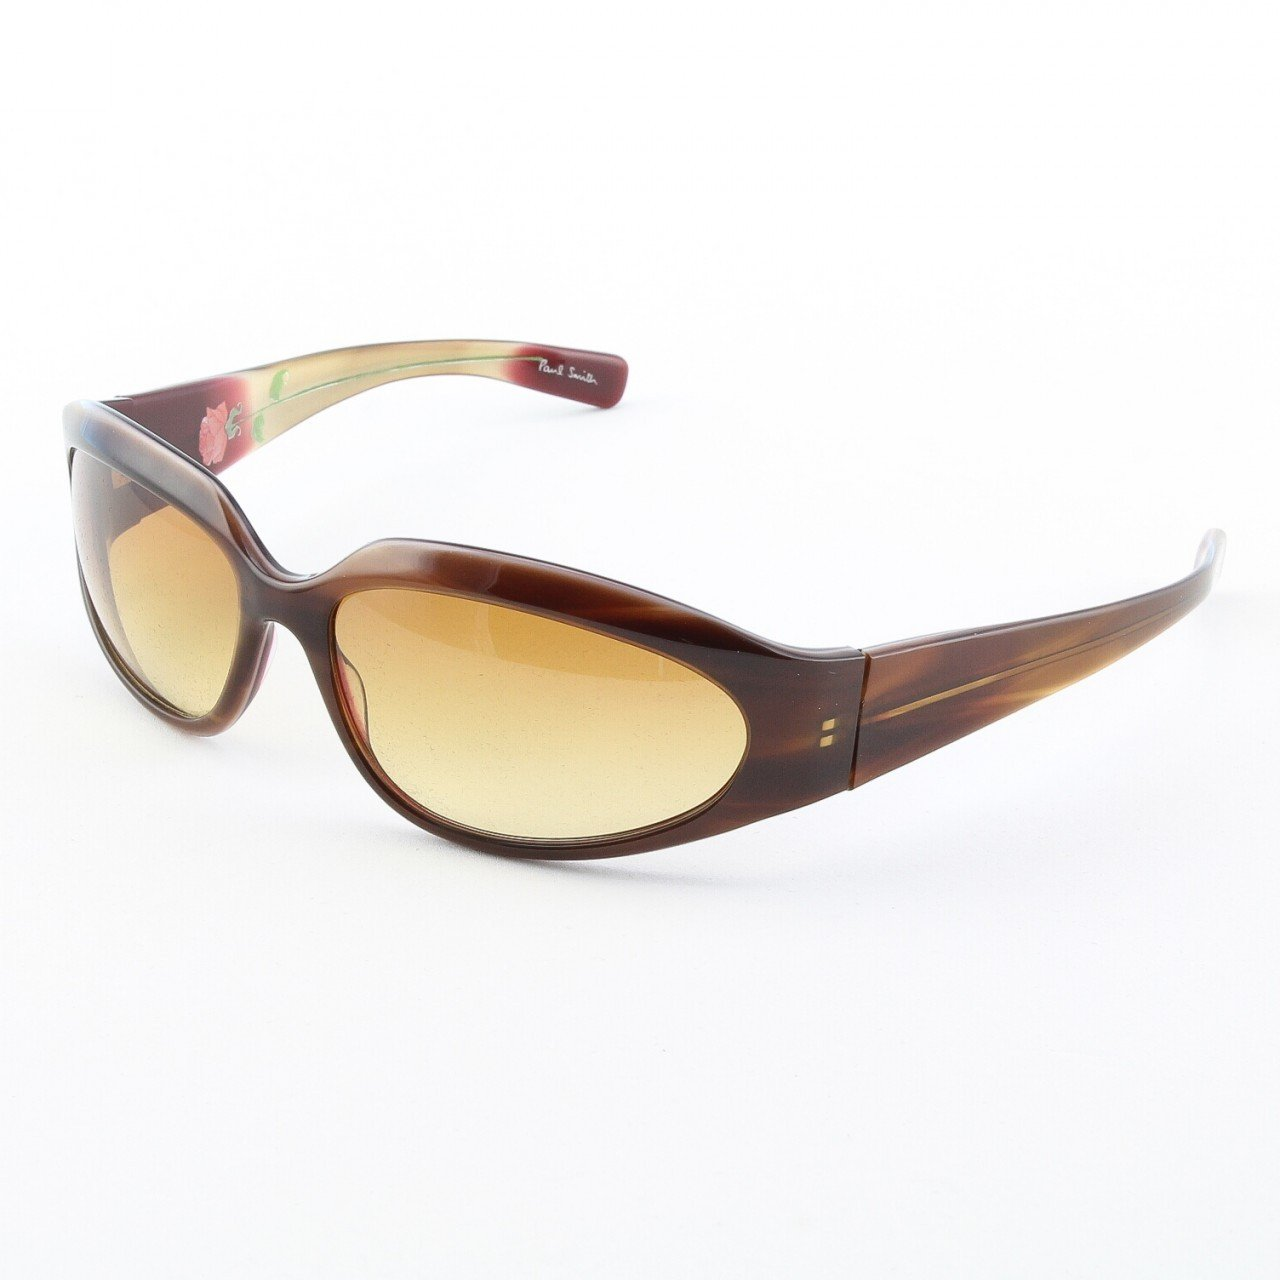 Paul Smith PS-347 SYGA Sunglasses Light Tortoise Brown w/ Brown Gradient Lenses 64mm